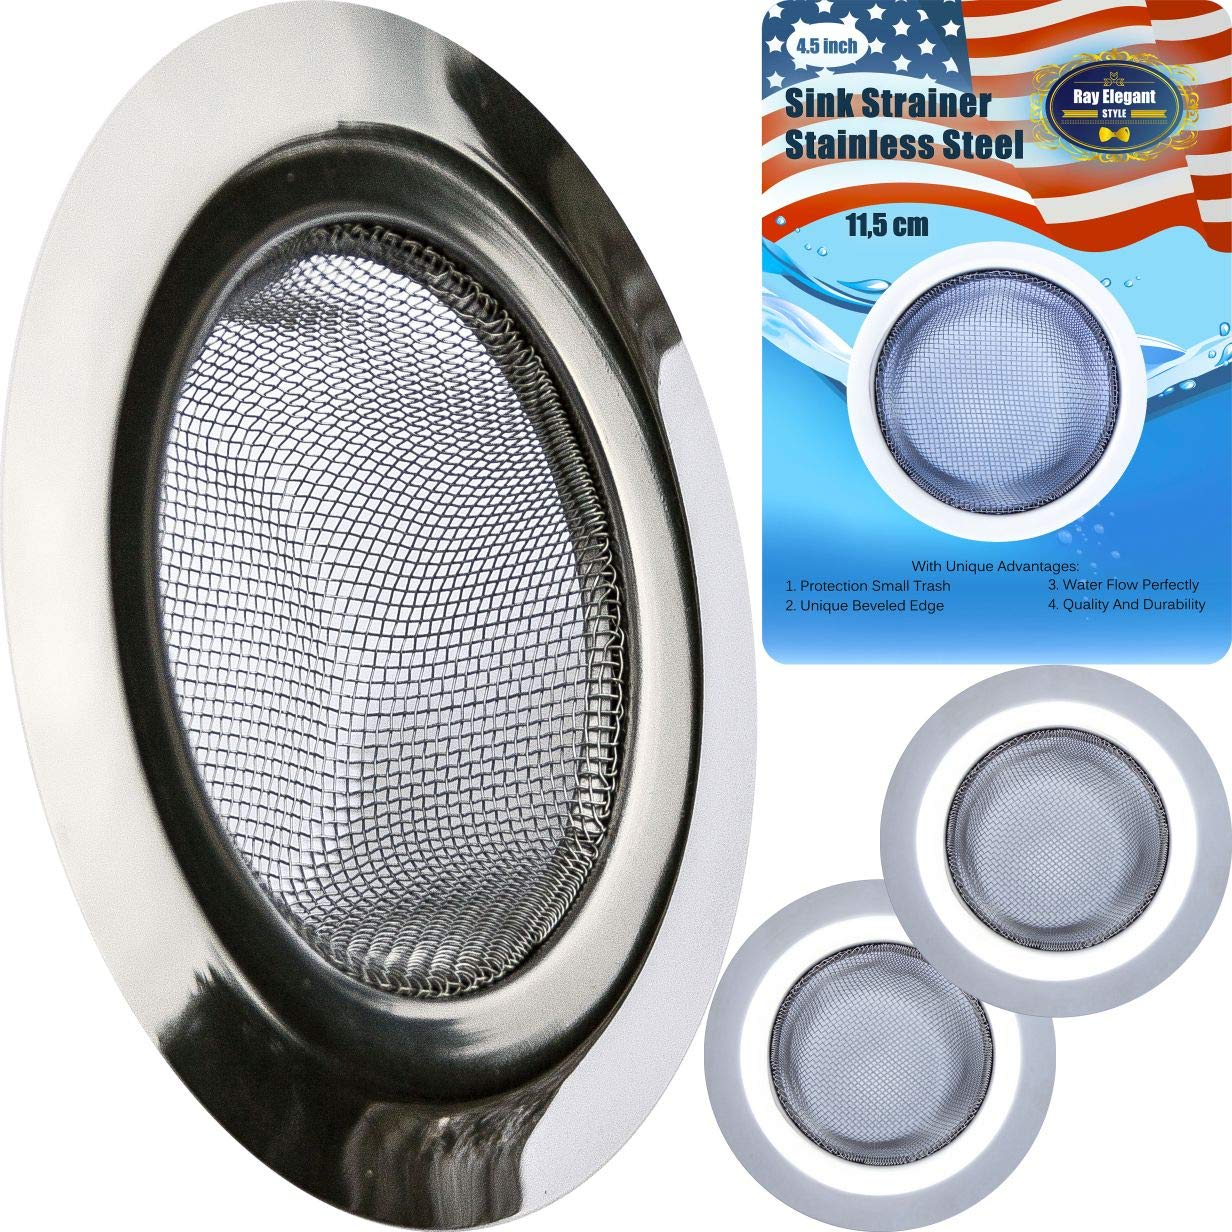 Kitchen Sink Strainer - 2 PC Stainless Steel Sink Strainer 4.5'' - Strong, Clean, Reliable Stainless Steel Prevent Rust, Edges Not Sharp, Deep Mesh, Quick Outflow - Outer 4.5'' x Inner 2.75'' x Deep 1.5''